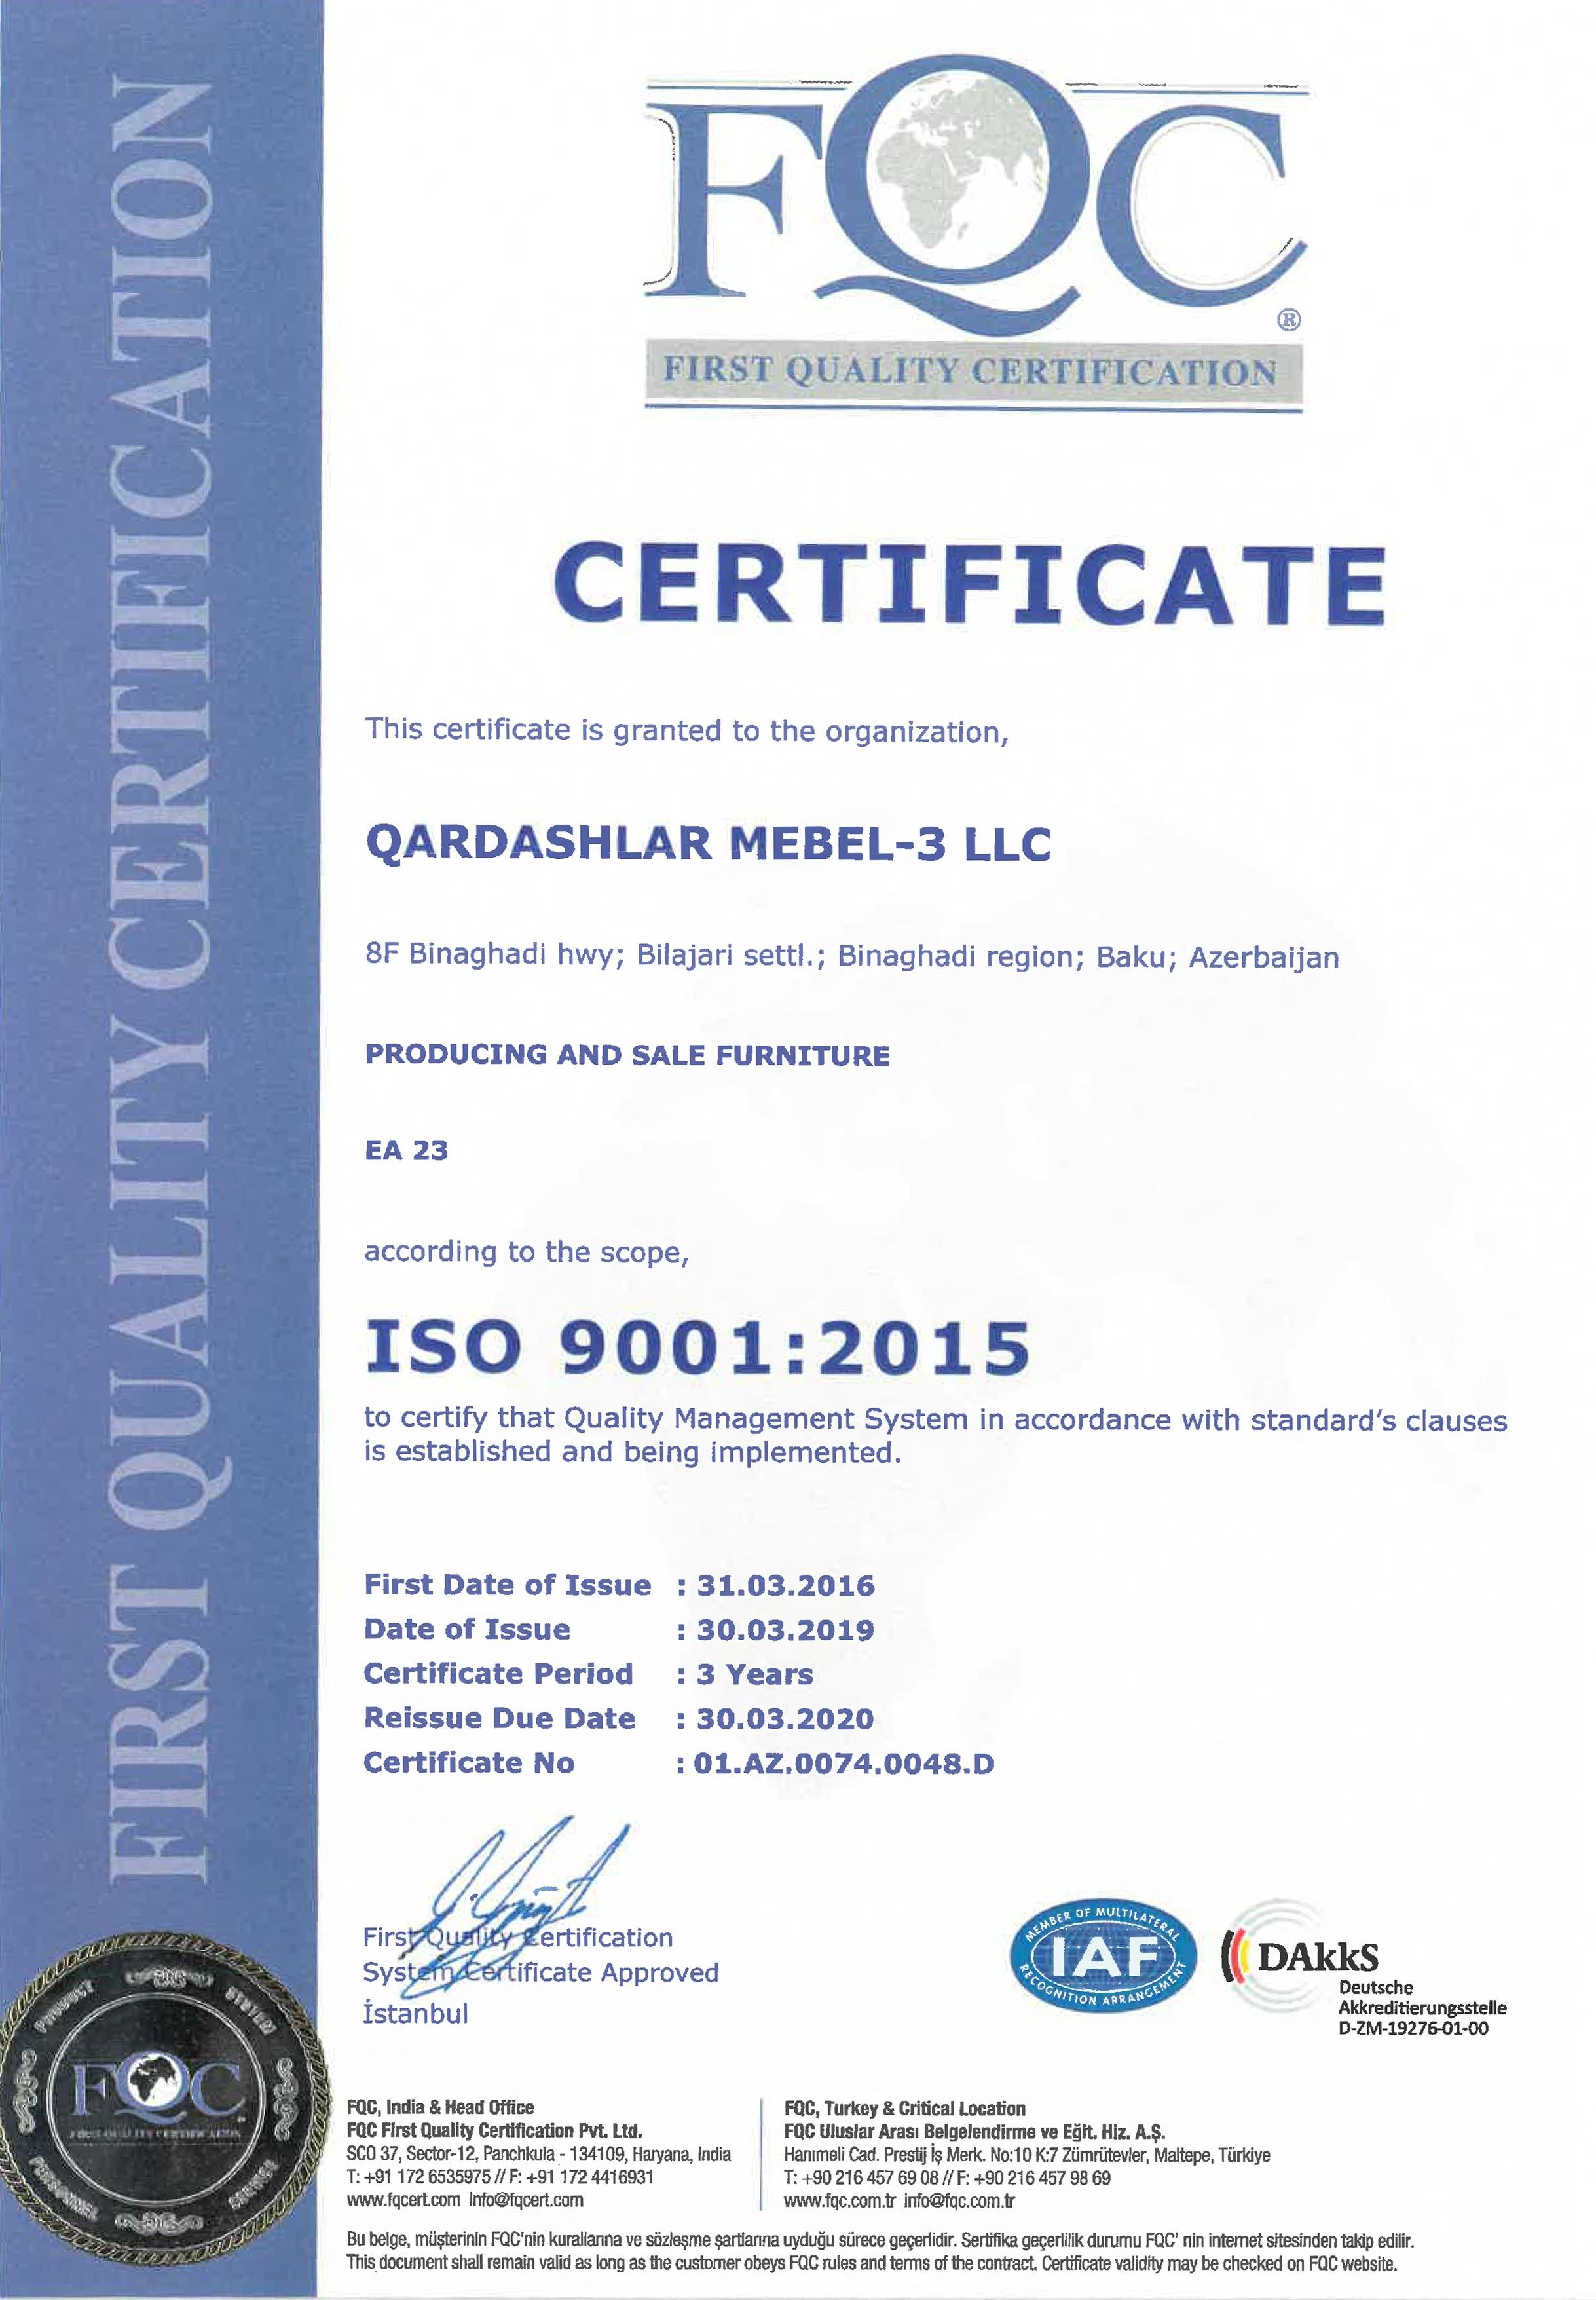 İSO 9001 certificate